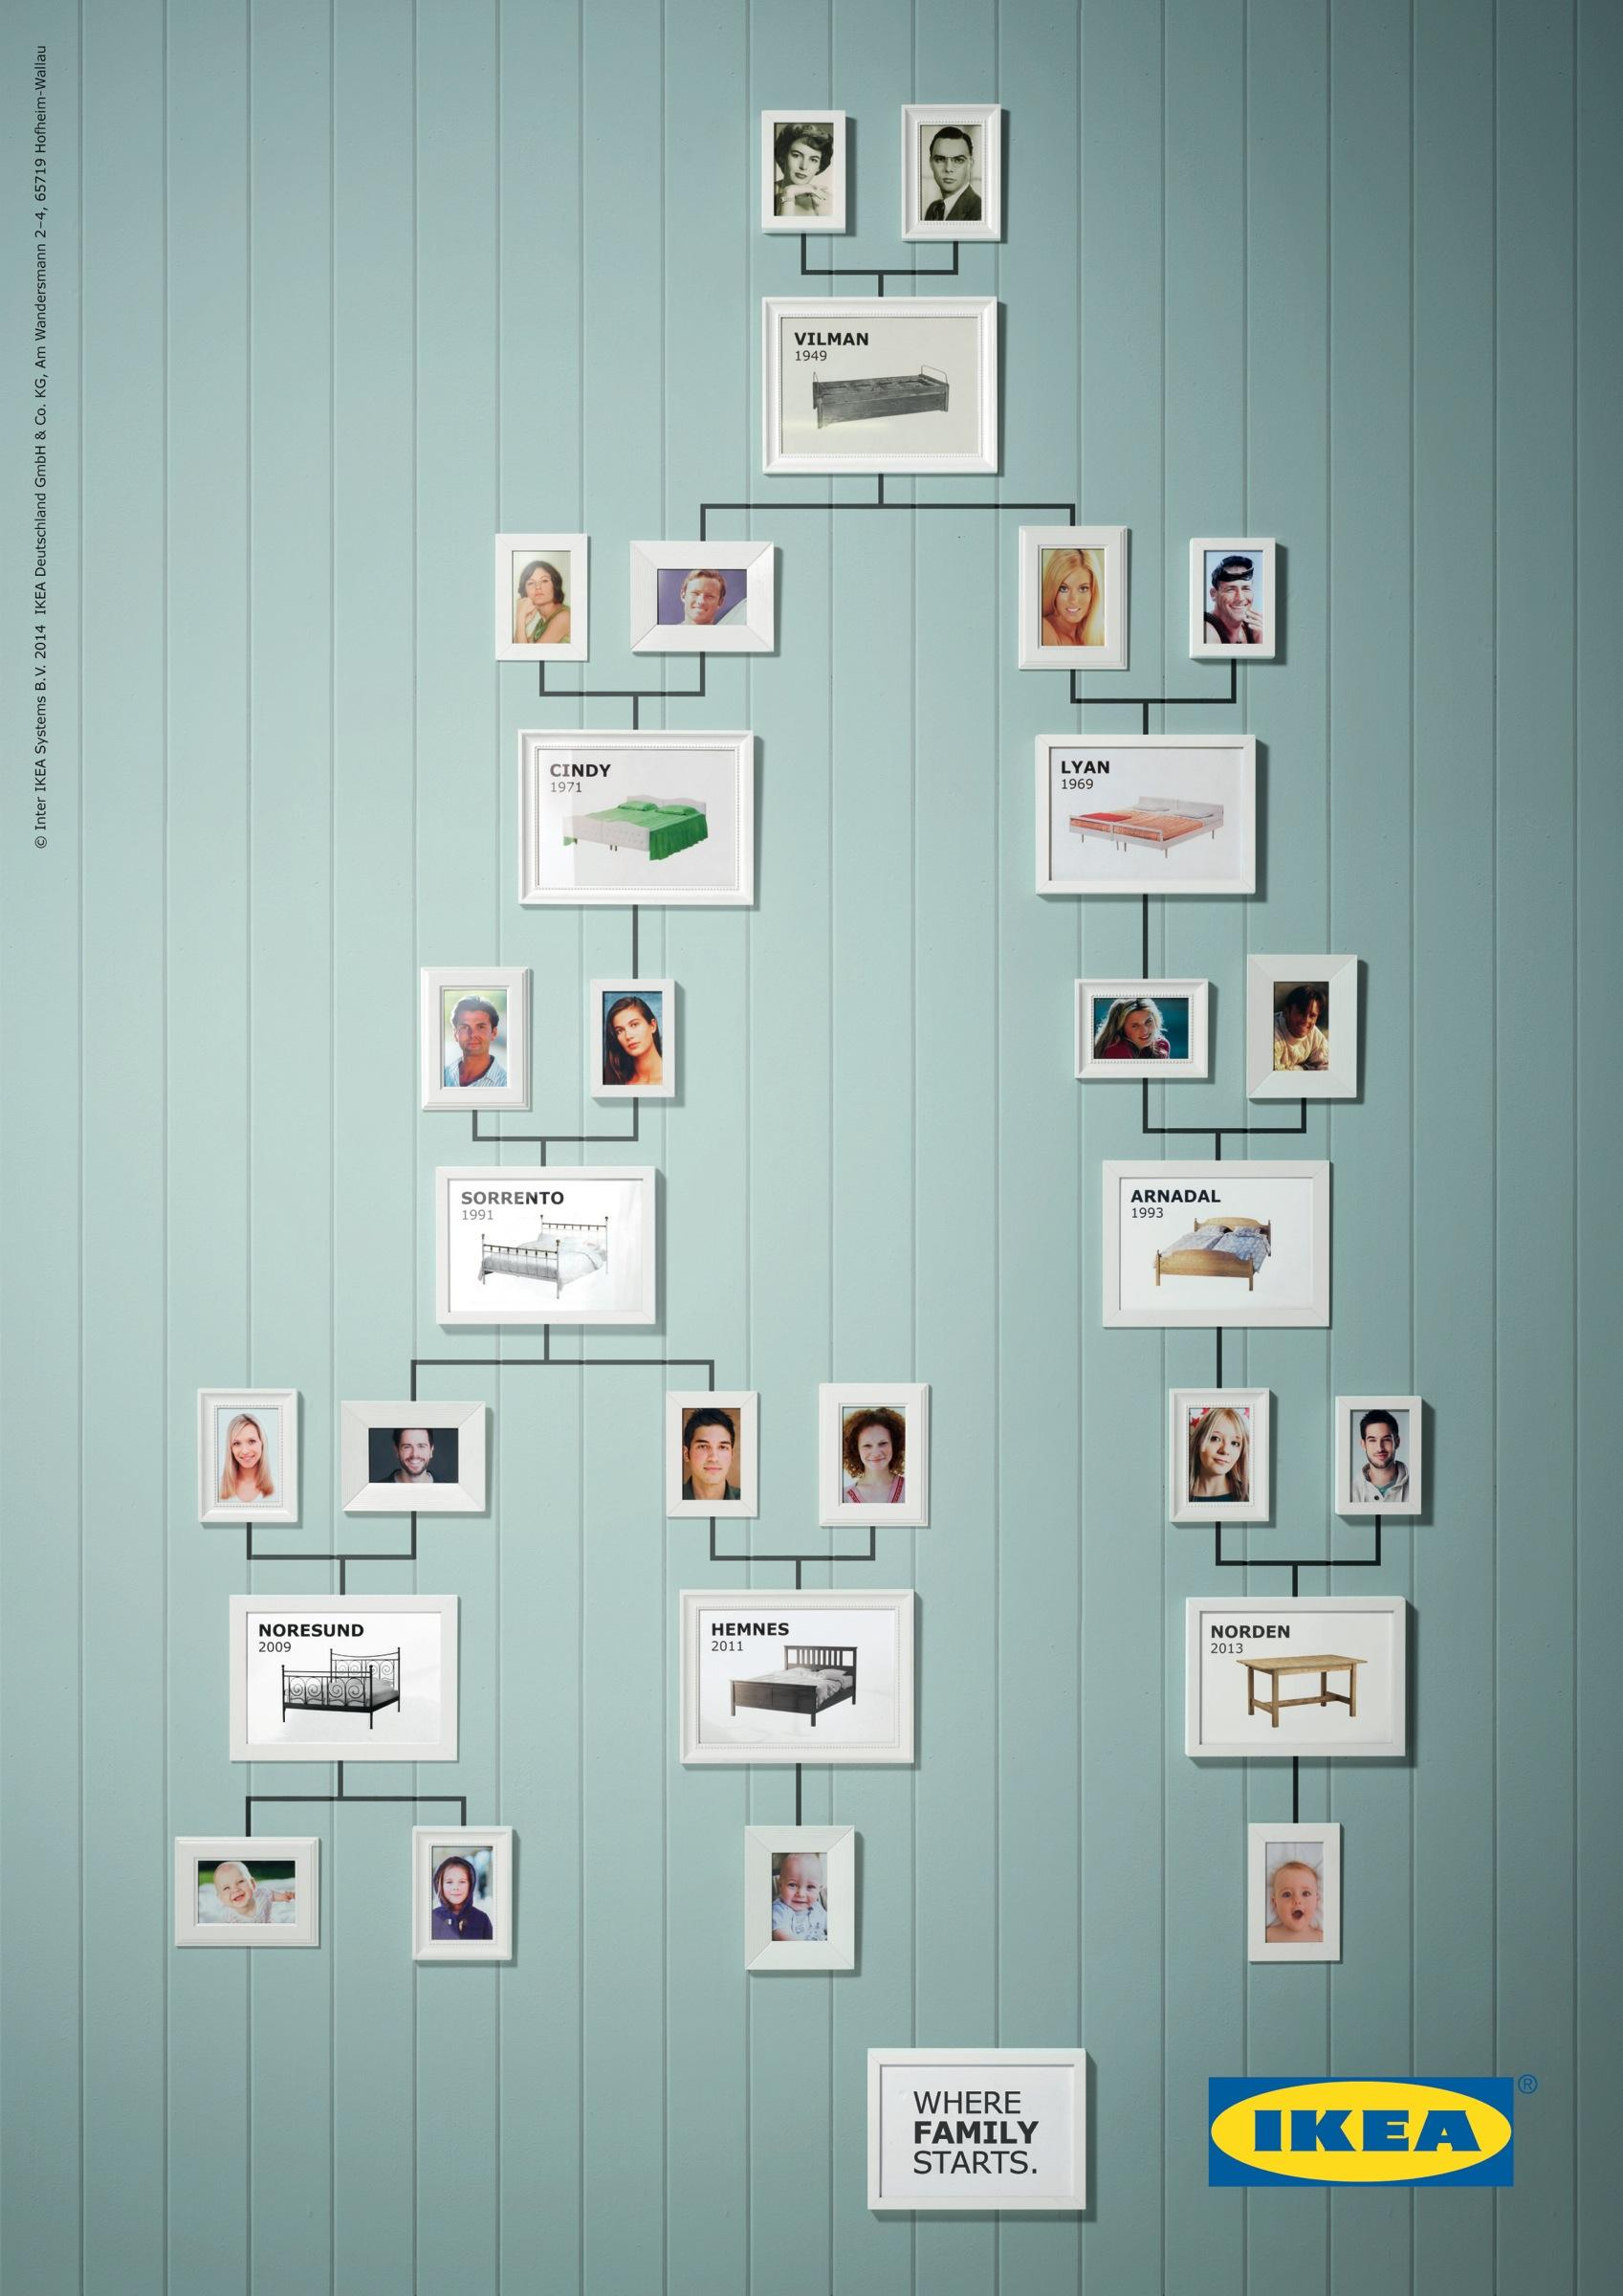 ikea outdoor advert by thjnk family tree 3 ads of the world. Black Bedroom Furniture Sets. Home Design Ideas